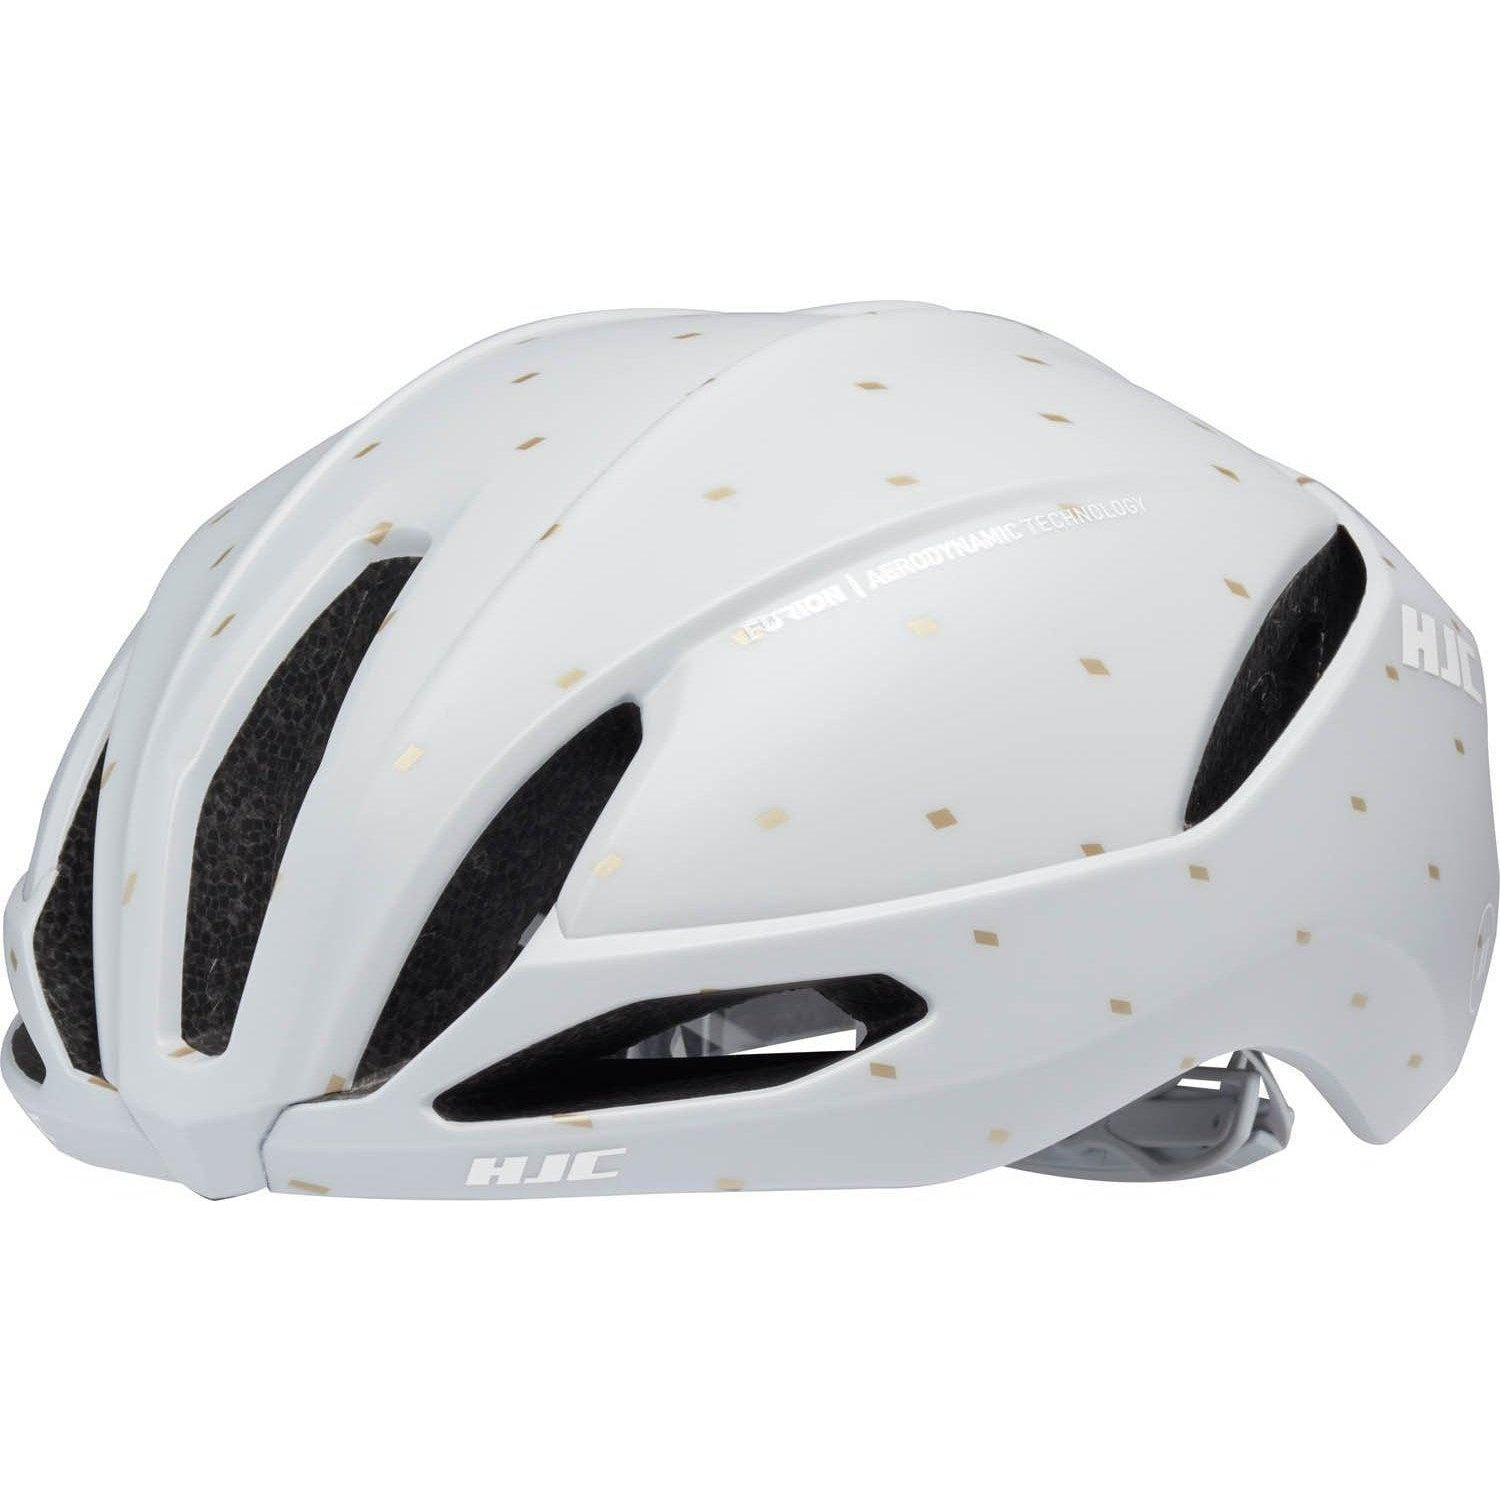 HJC-HJC Furion 2.0 Road Cycling Helmet-Off White/Gold-S-HJC81212901-saddleback-elite-performance-cycling